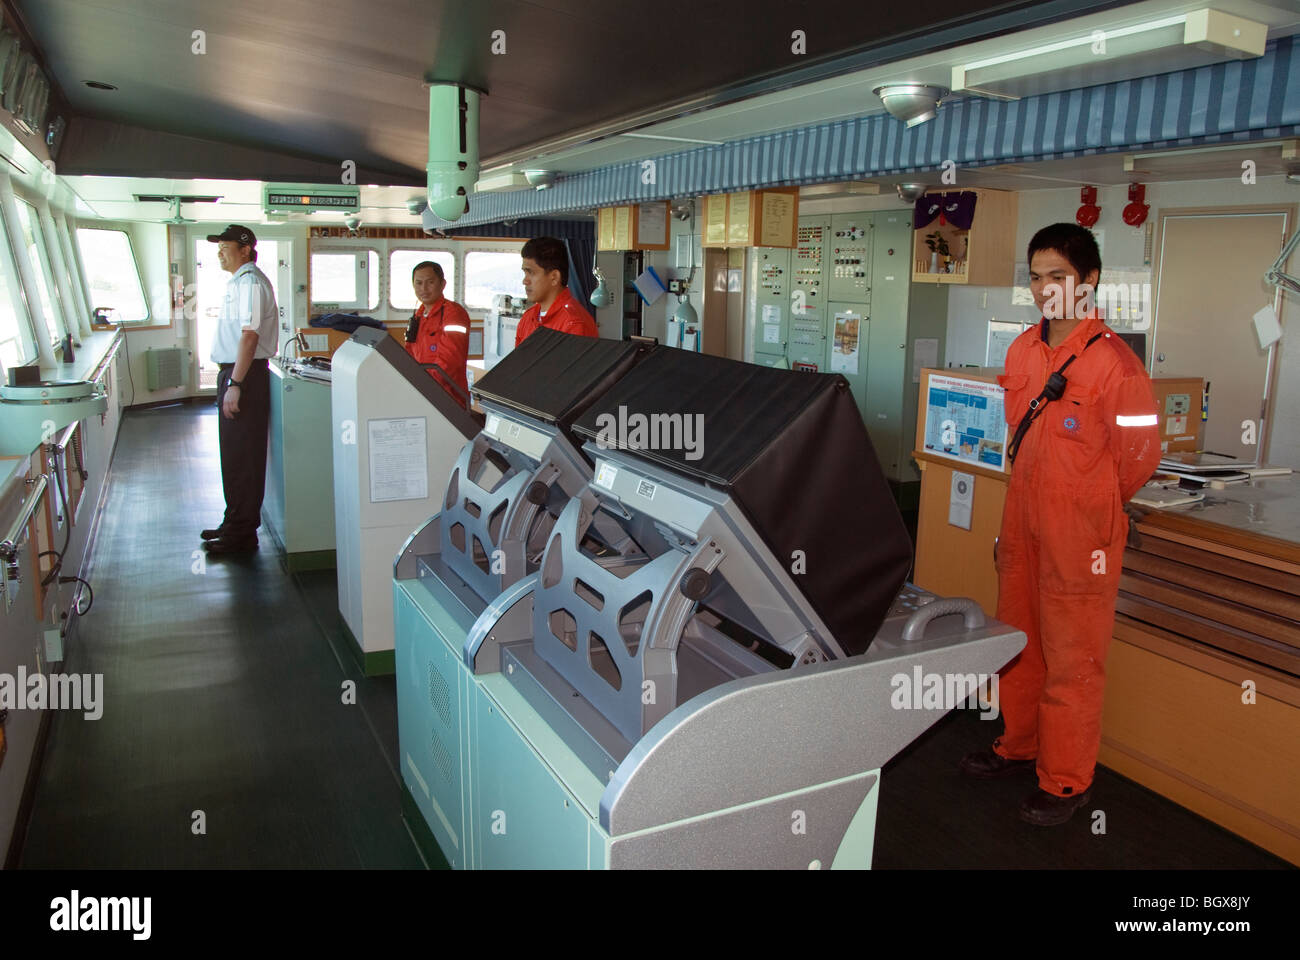 Captain and crew members on bridge of a ship entering port. - Stock Image